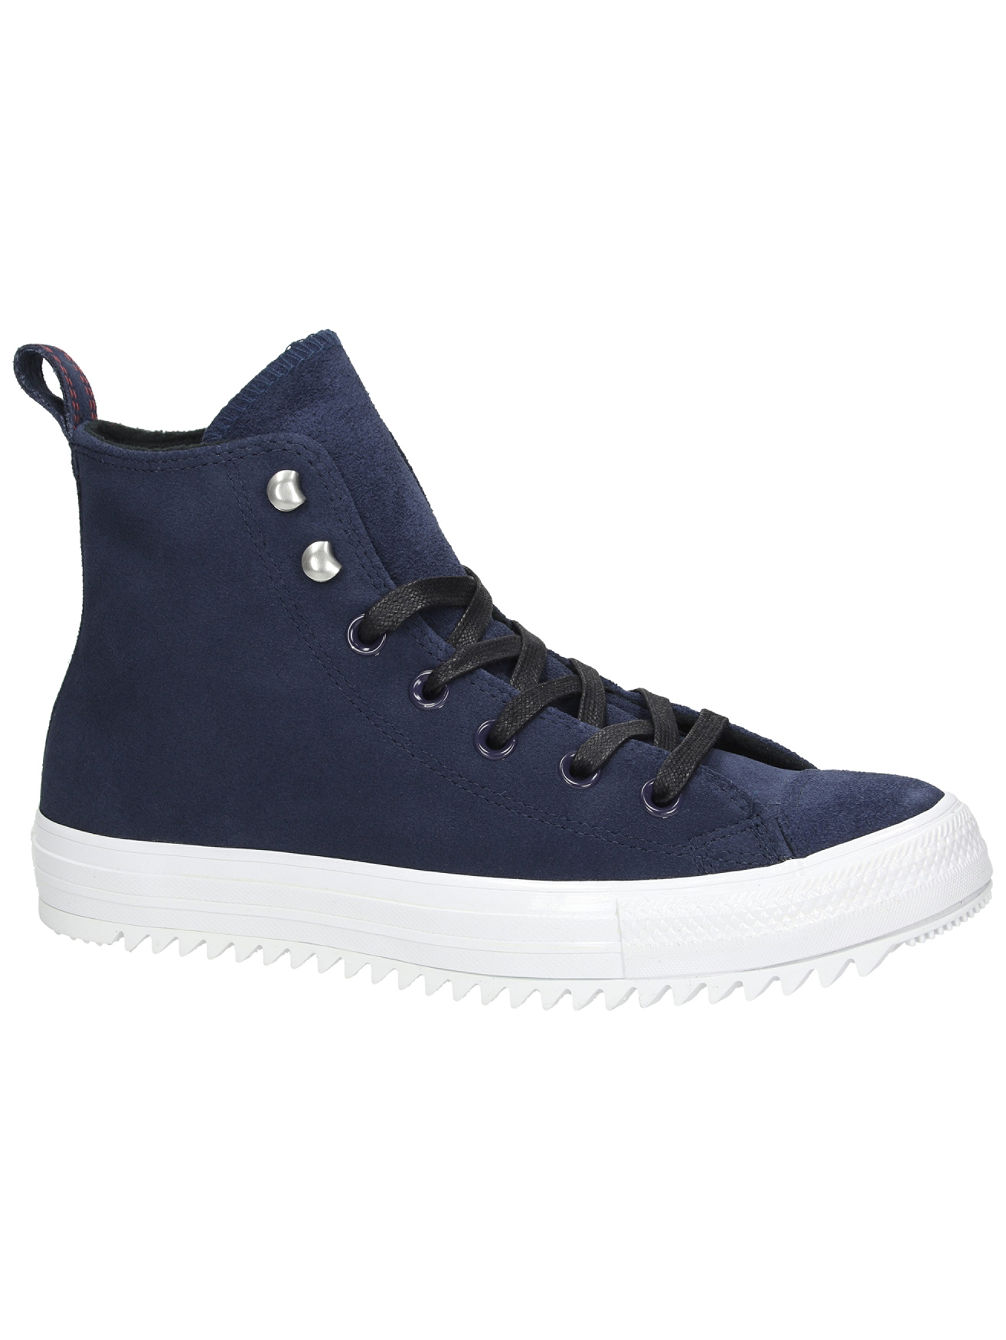 Chuck Taylor All Star Hiker Sneakers